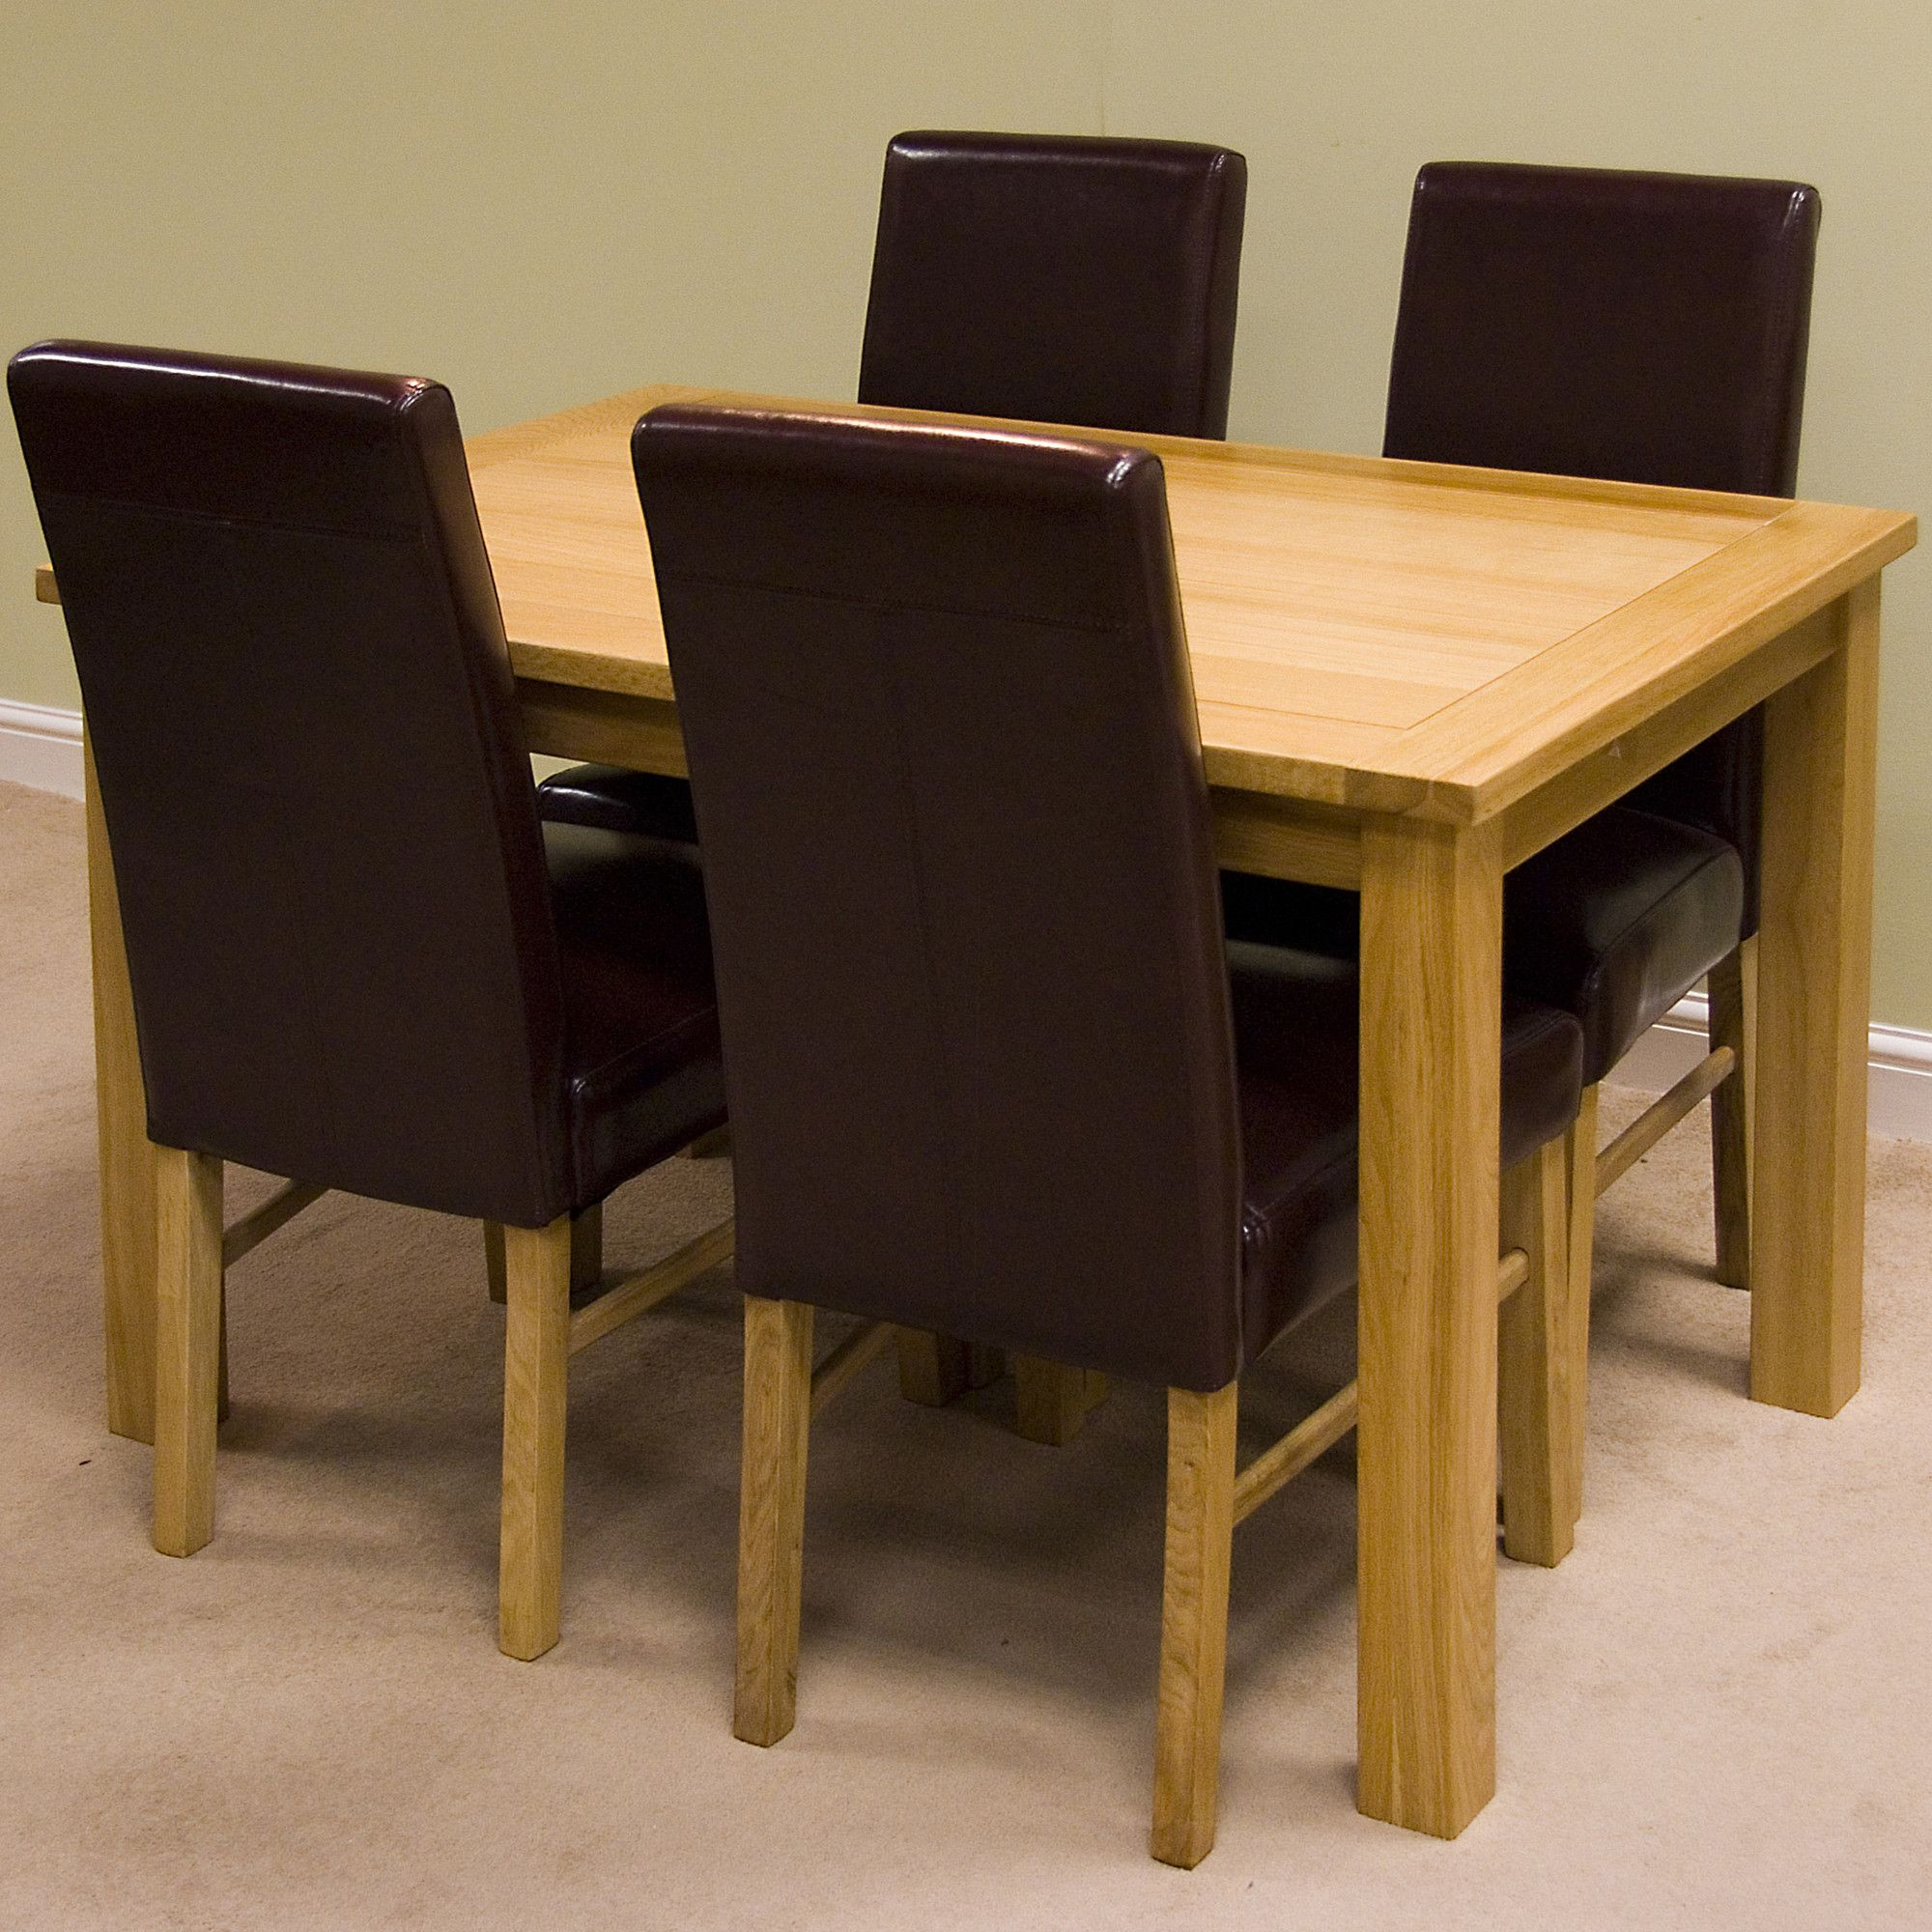 G&P Furniture Lyon Oak 5-Piece Large Fixed Top Dining Set